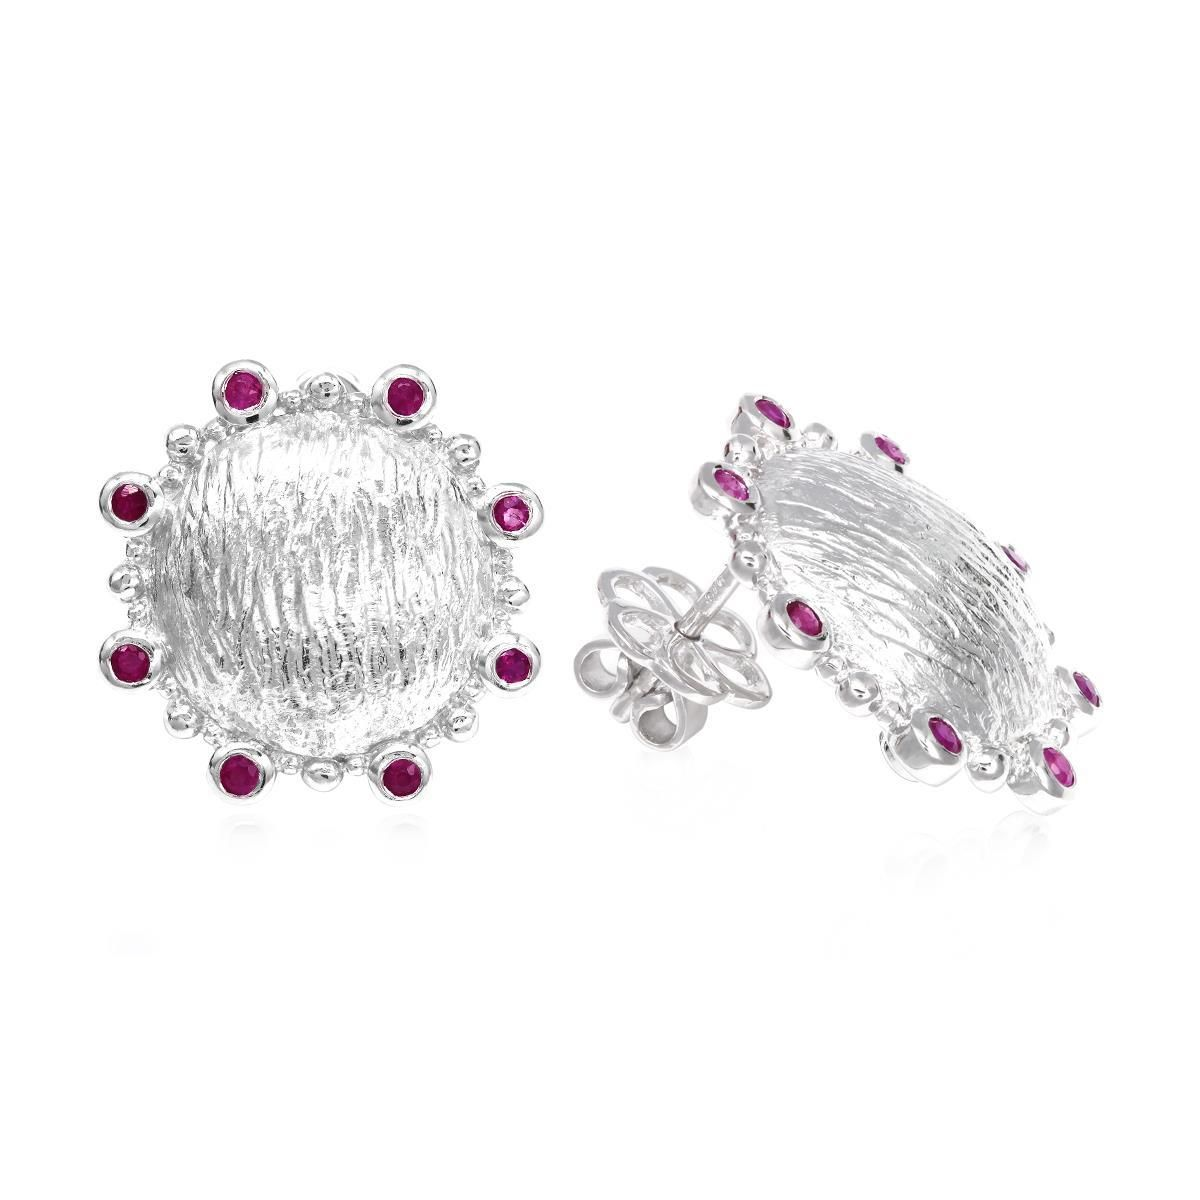 This Red Ruby Earring  is the most appropriate gift for a special occasion like Valentine's Day. Let your lady be impressed by the choice of your color and design. Buy this color of love, and show her how much she means to you. This red rhodium Earring  can be the most idealistic way to express your love for her.